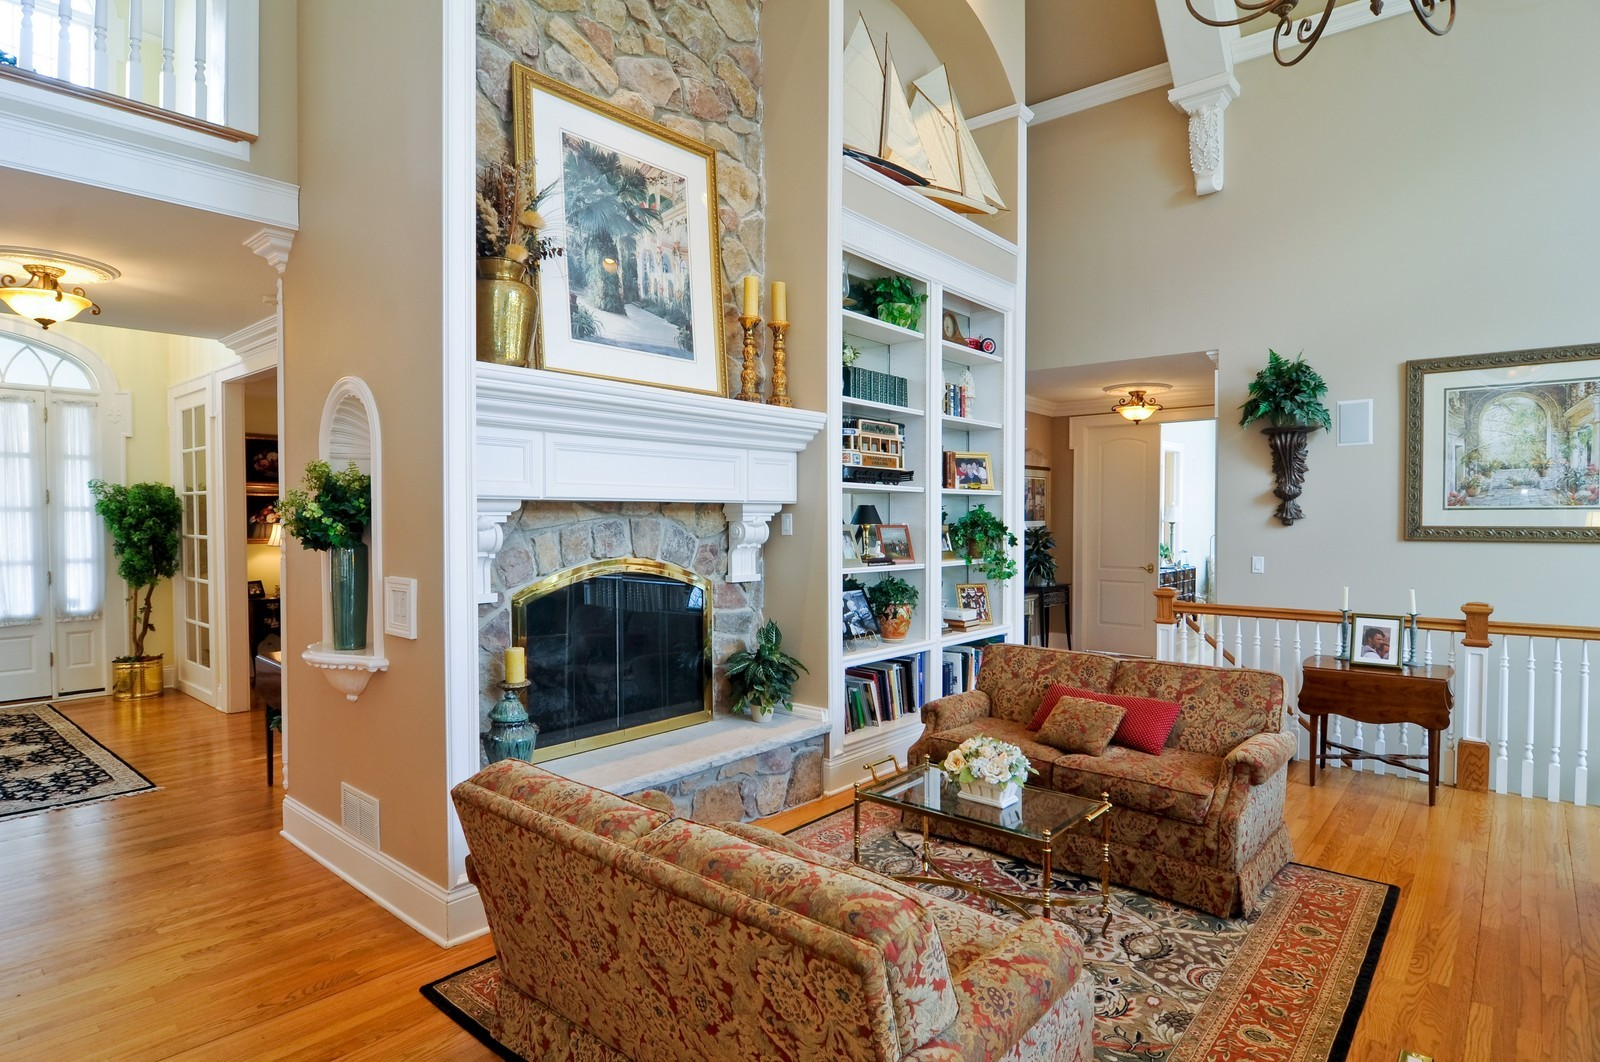 Real Estate Photography - 1885 Durham Drive, Inverness, IL, 60067 - Location 2